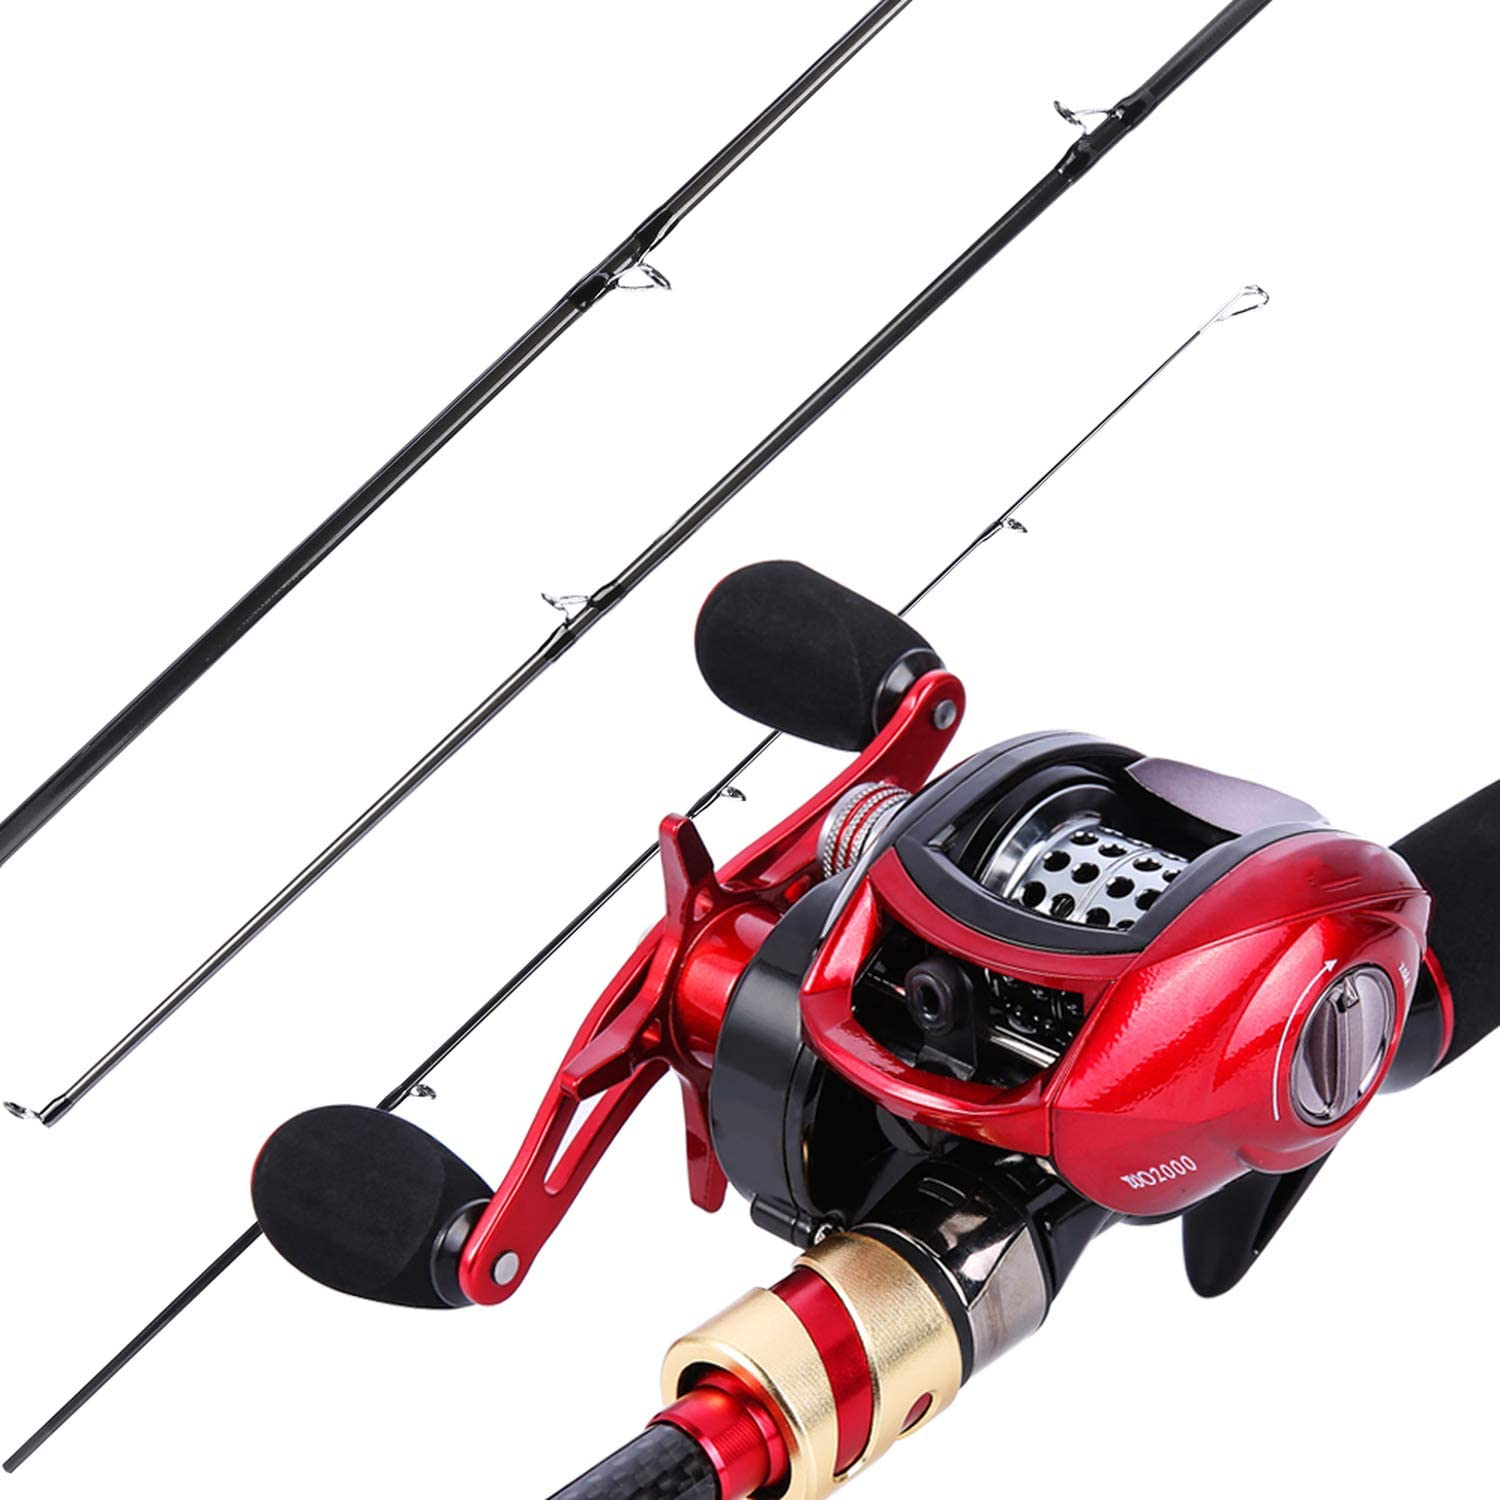 2.1m Spinning Casting Fishing Rod 4 Sections High Carbon Rods